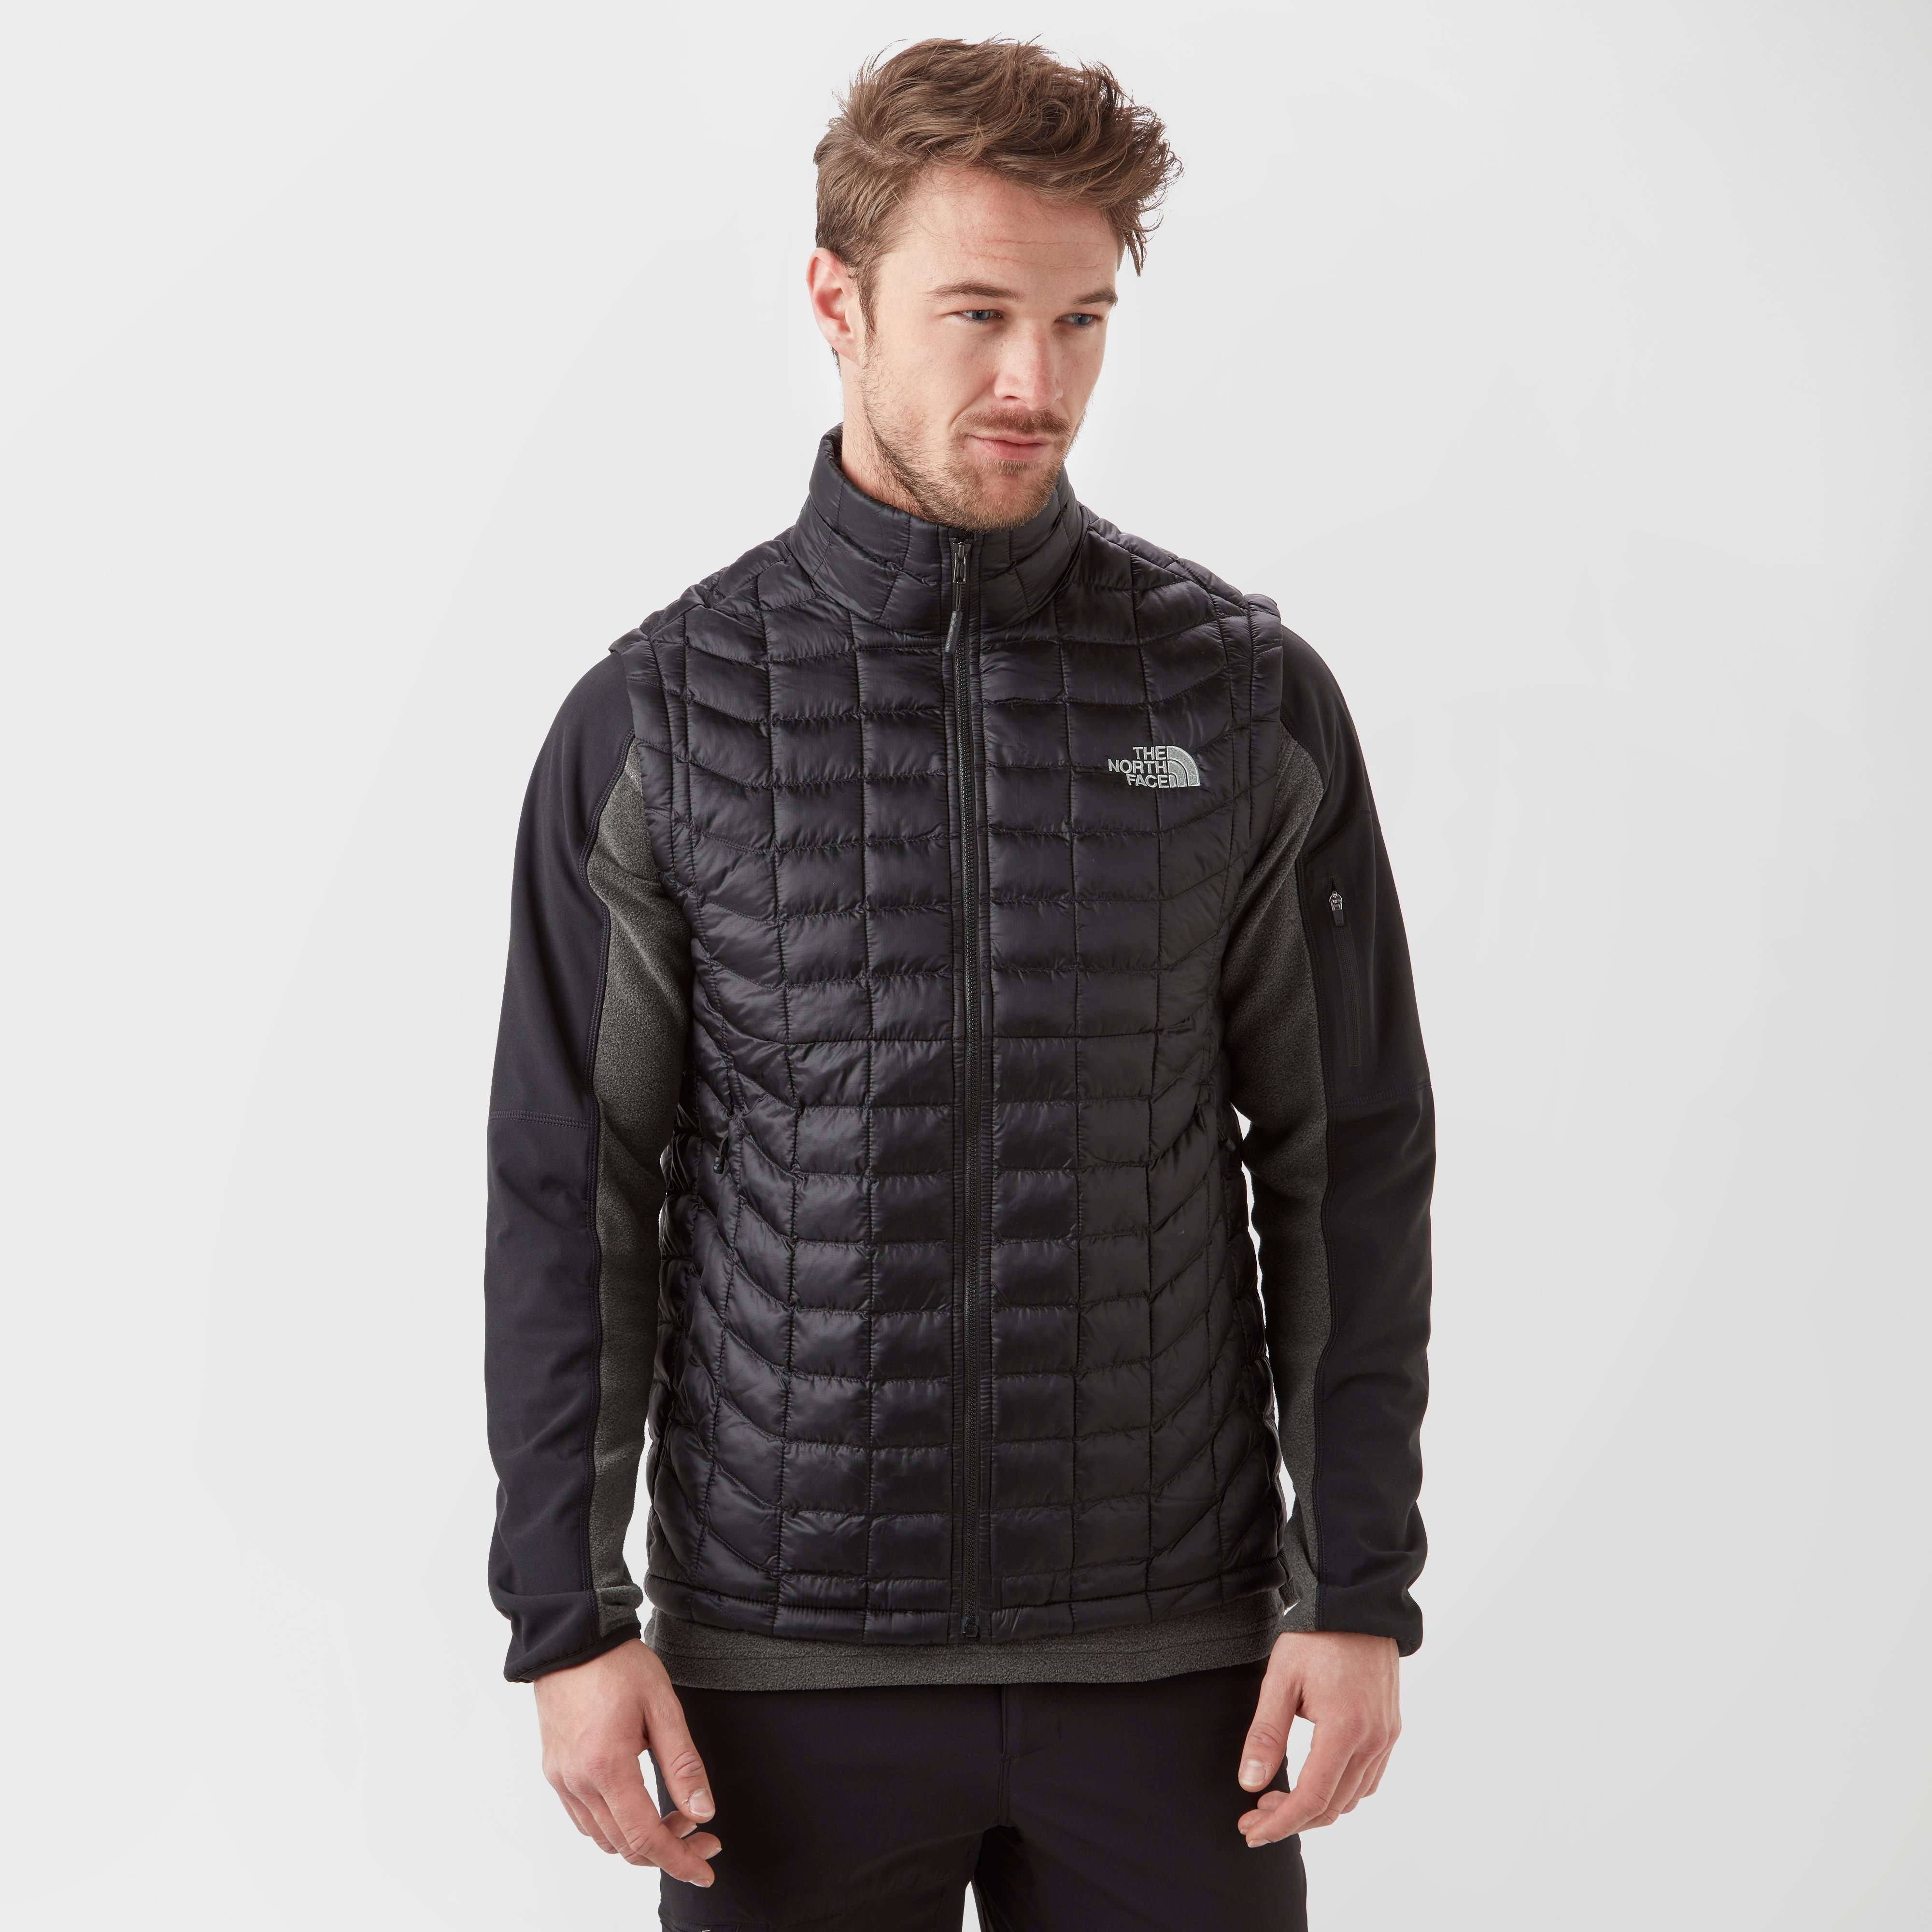 THE NORTH FACE Men's Thermoball™ Vest